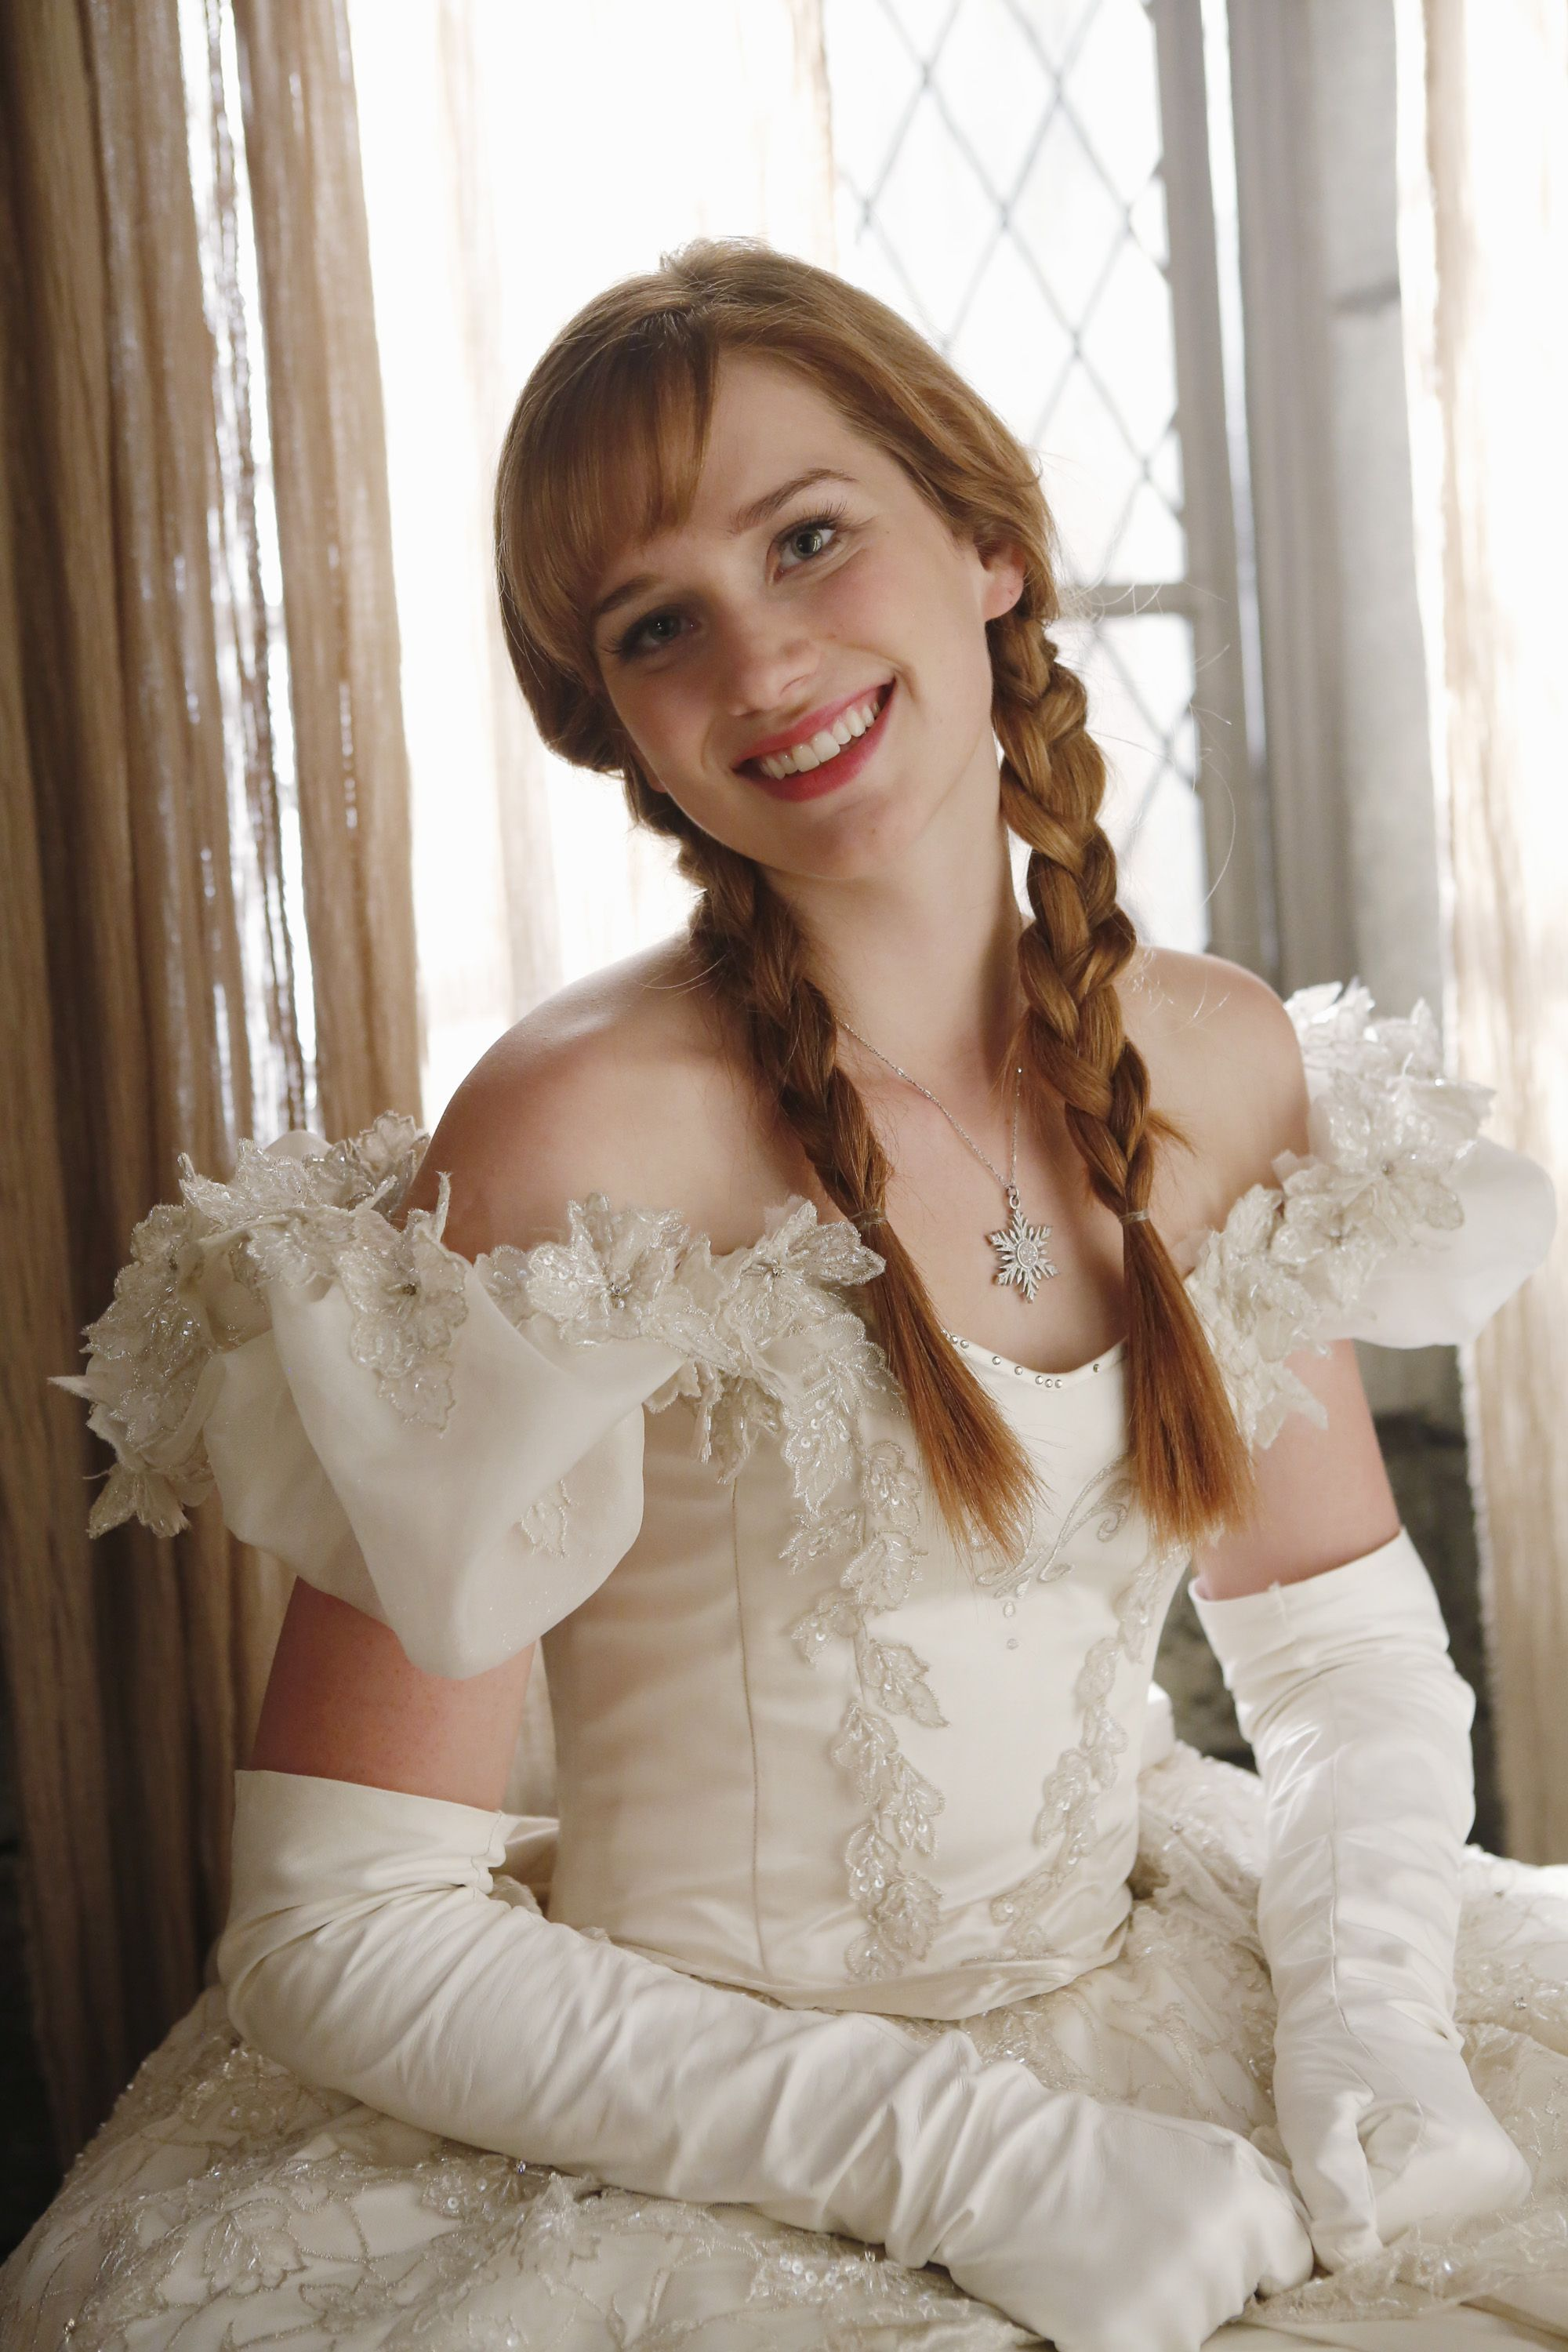 mothers wedding dresses Anna in her mother s wedding dress Once Upon A Time Photo Fanpop